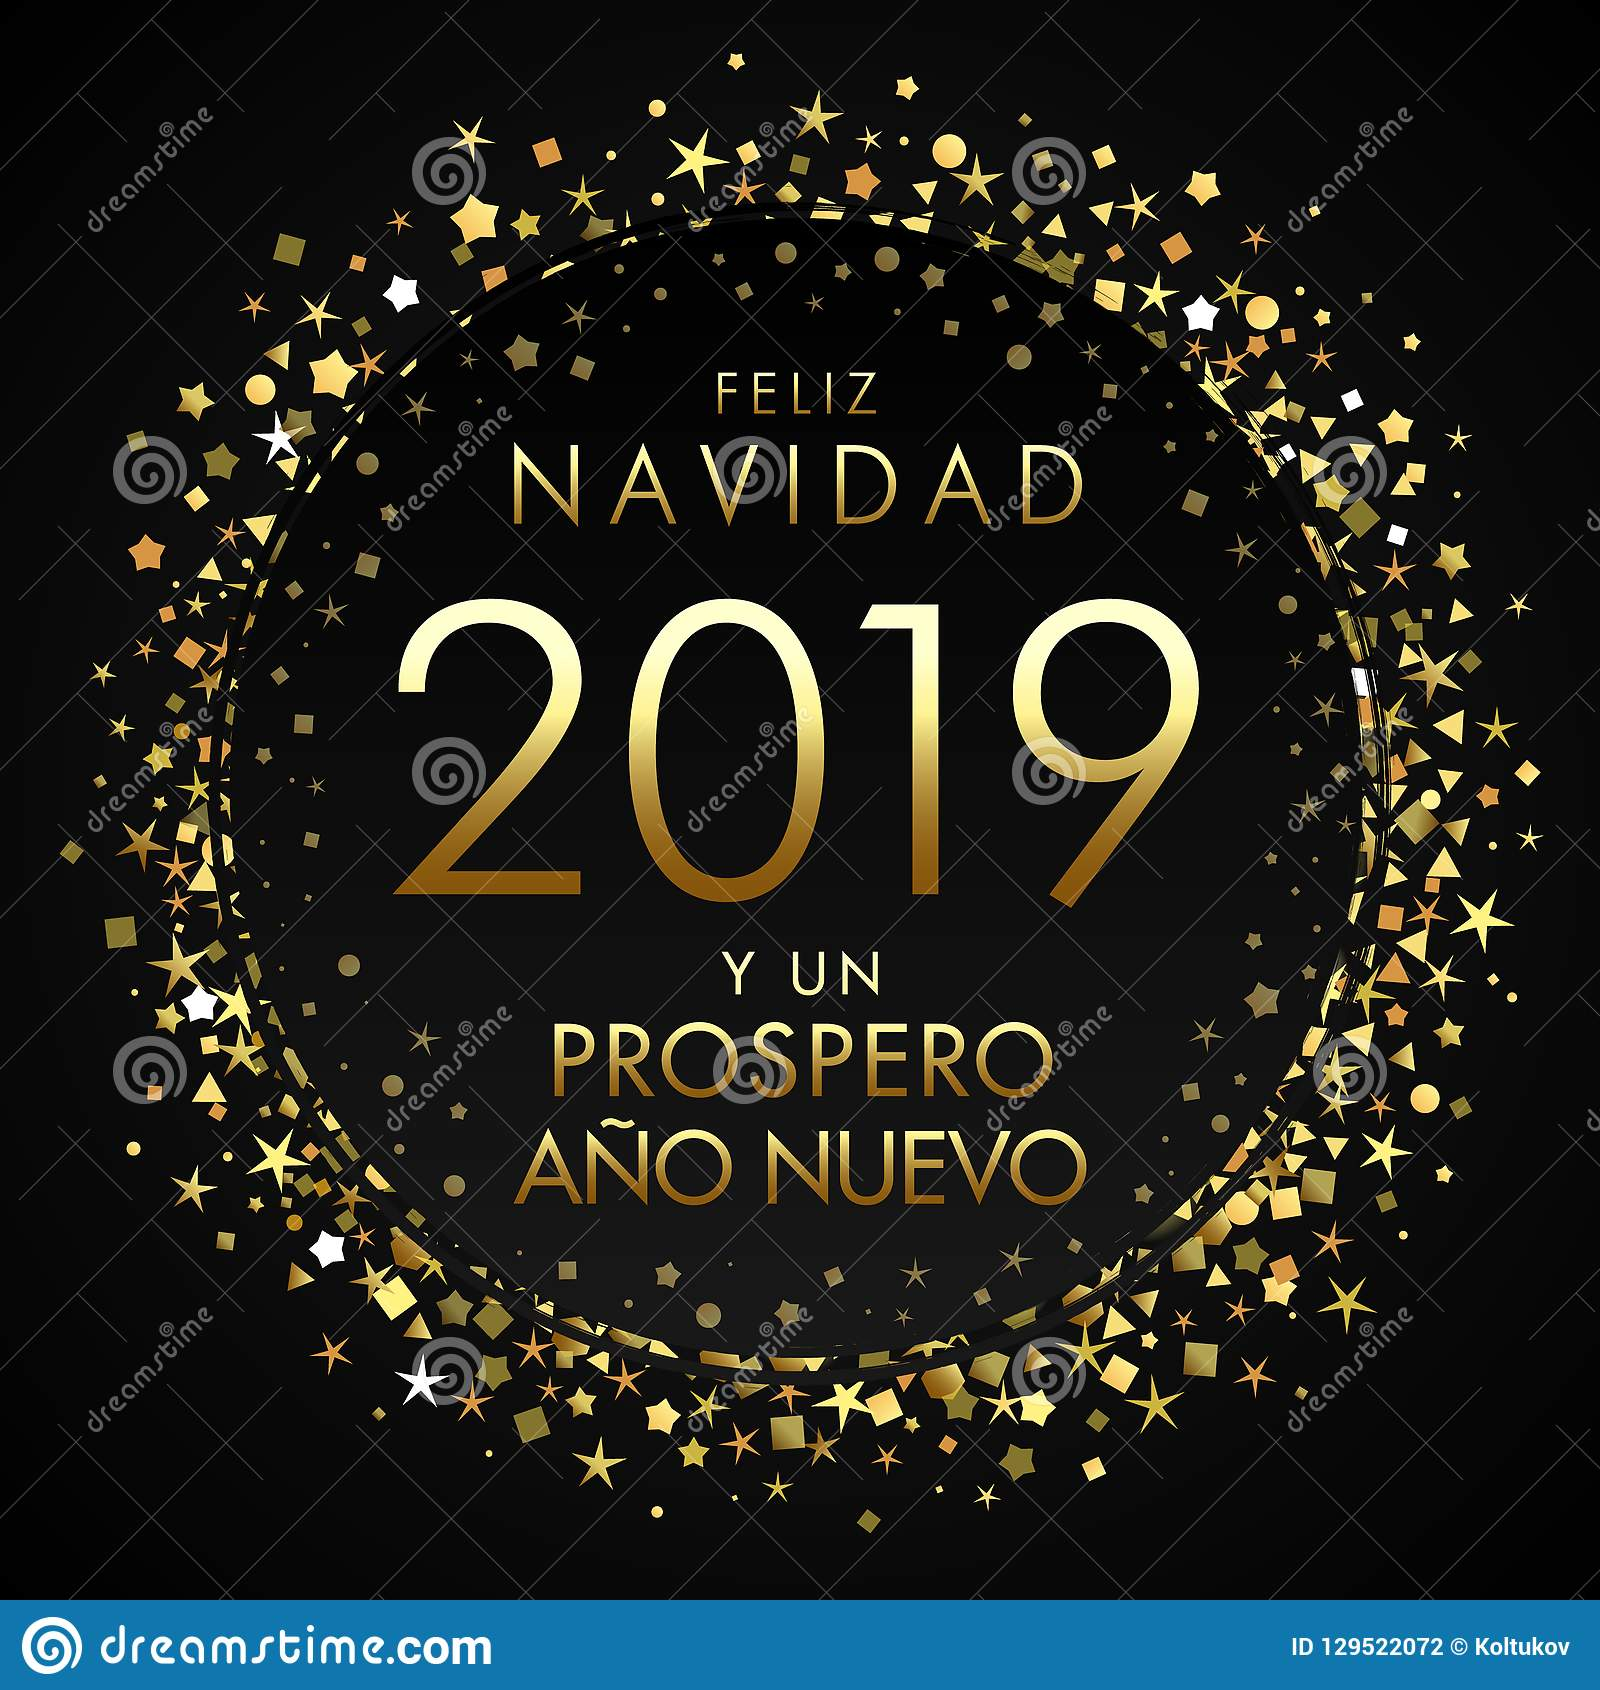 2019 feliz navidad spanish greeting card translate merry christmas and happy new year